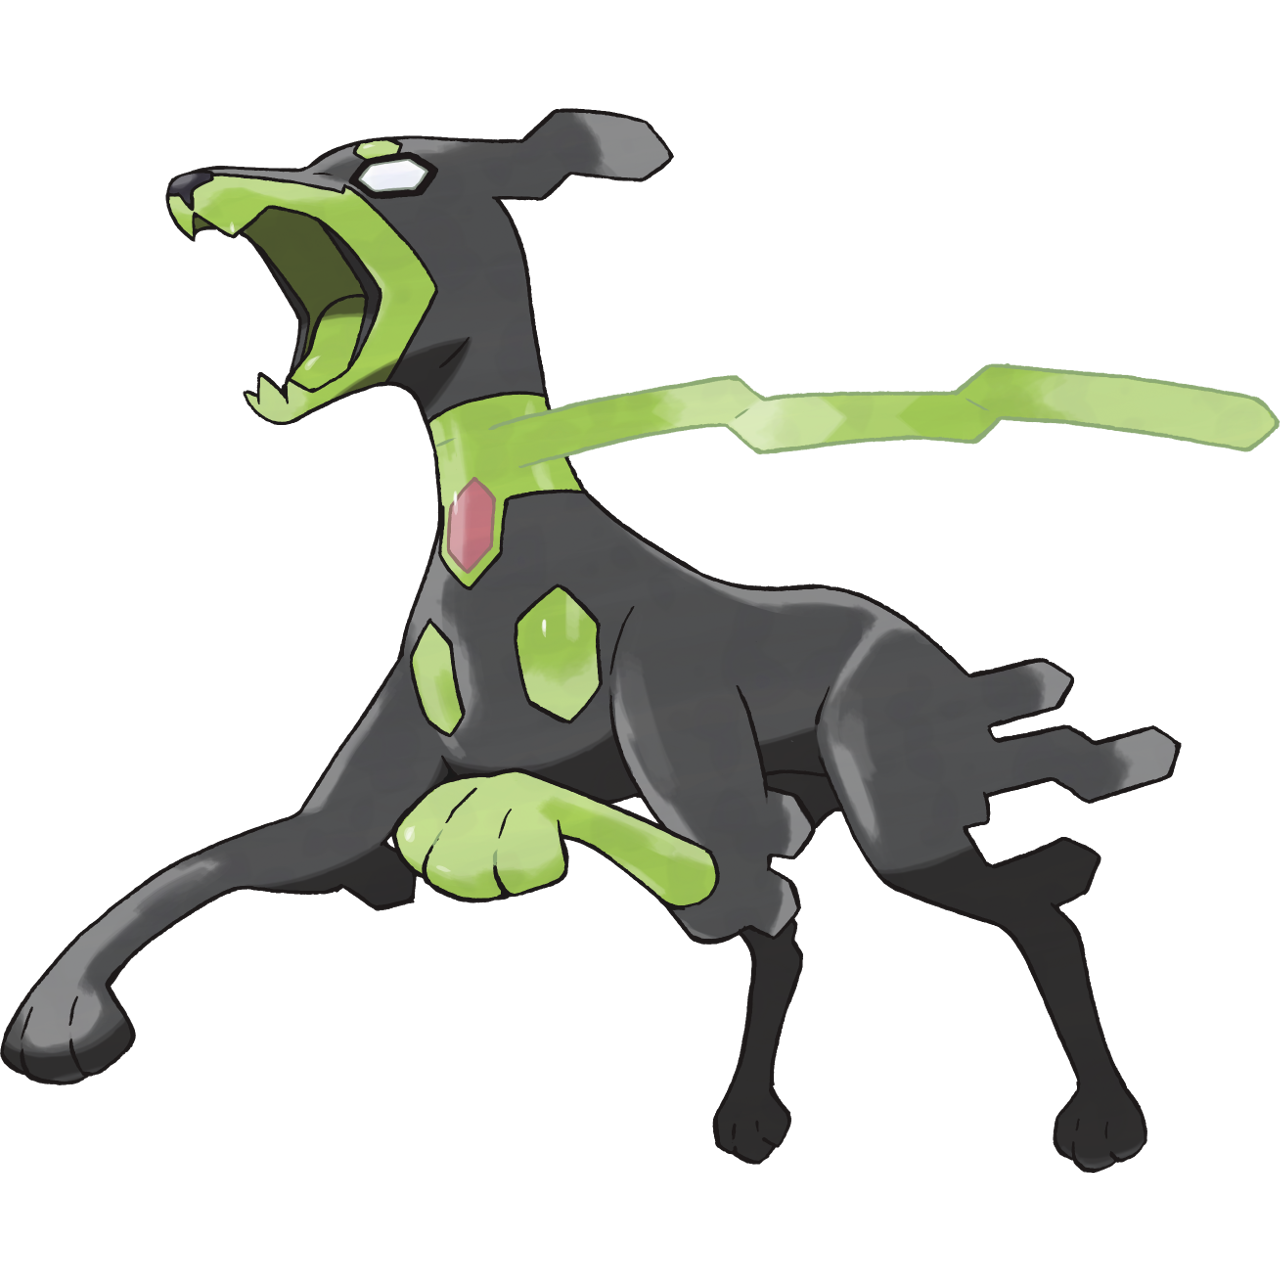 Pokemon Ultra Sun & Moon: How To Get 100% Zygarde Form